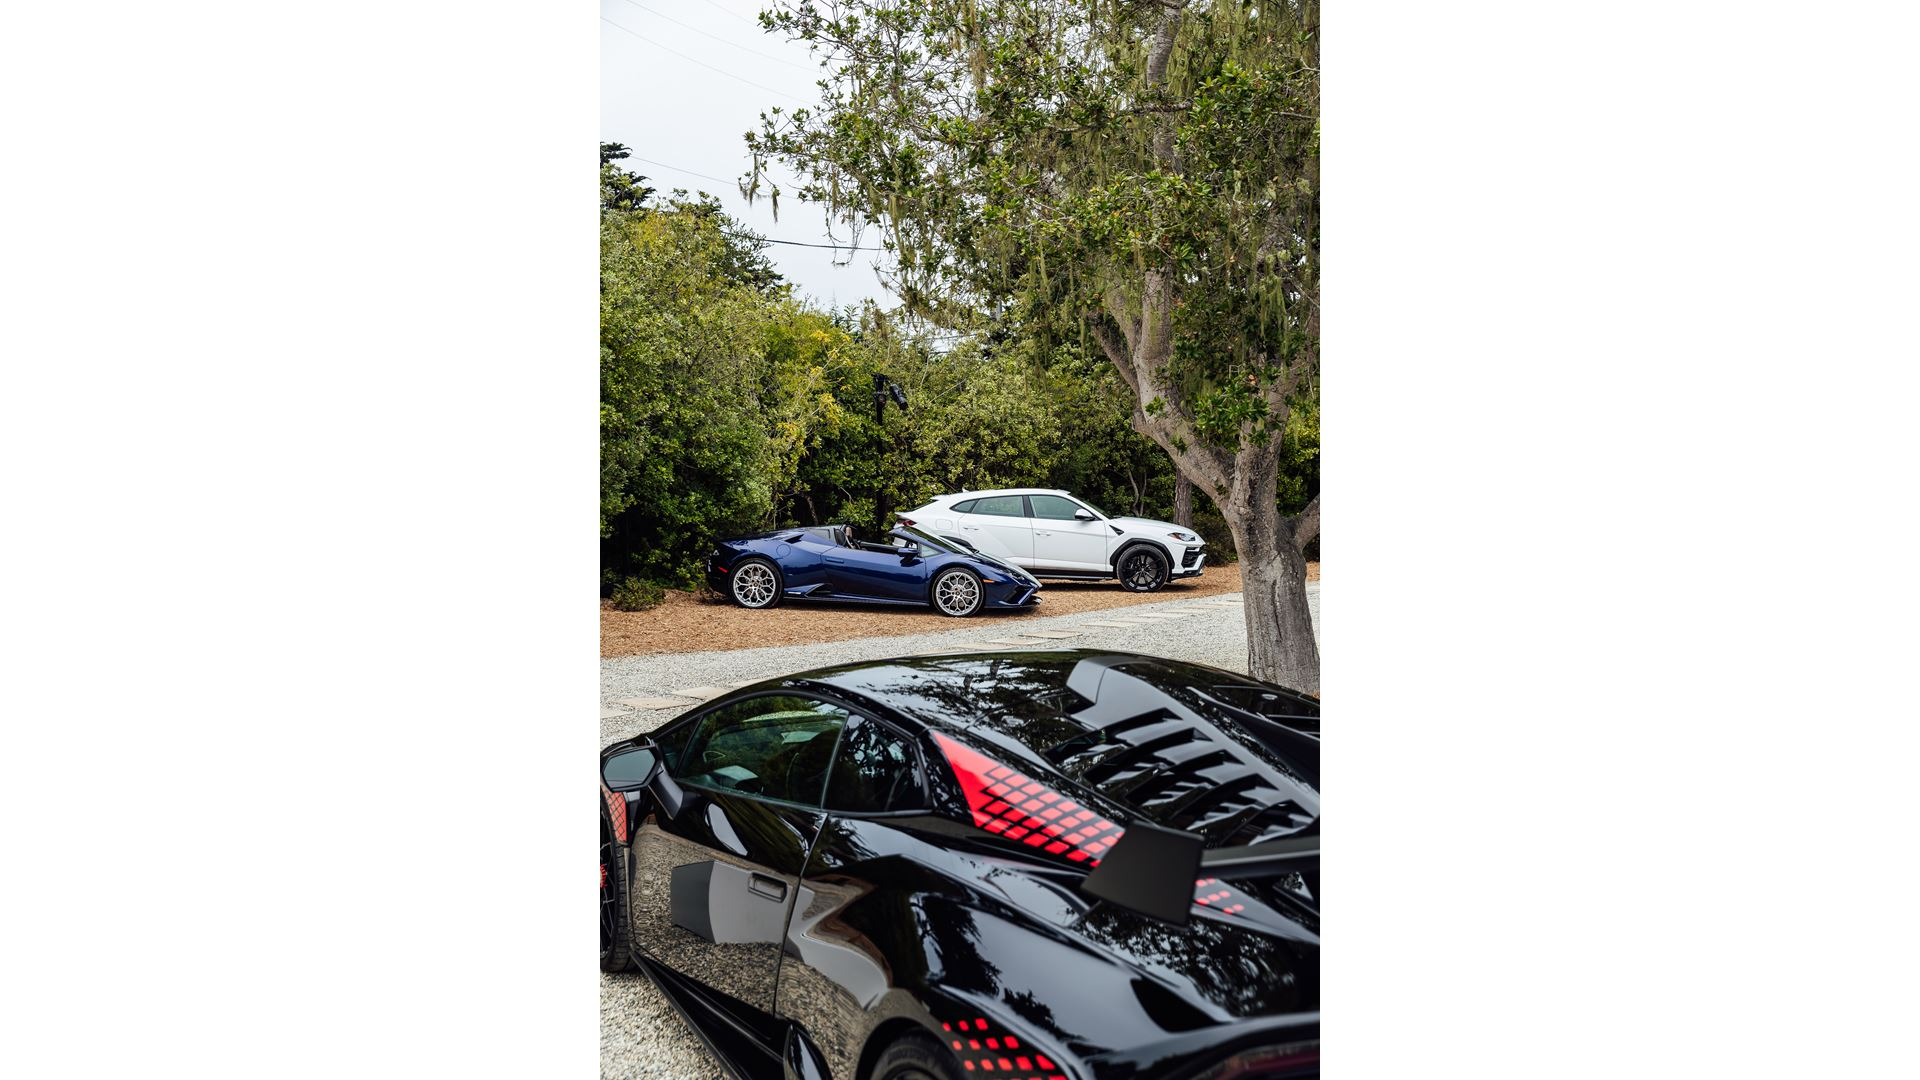 Lamborghini Opens Private Lounge During Monterey Car Week 2021 Showcasing the Brand's Ethos and Design DNA - Image 1